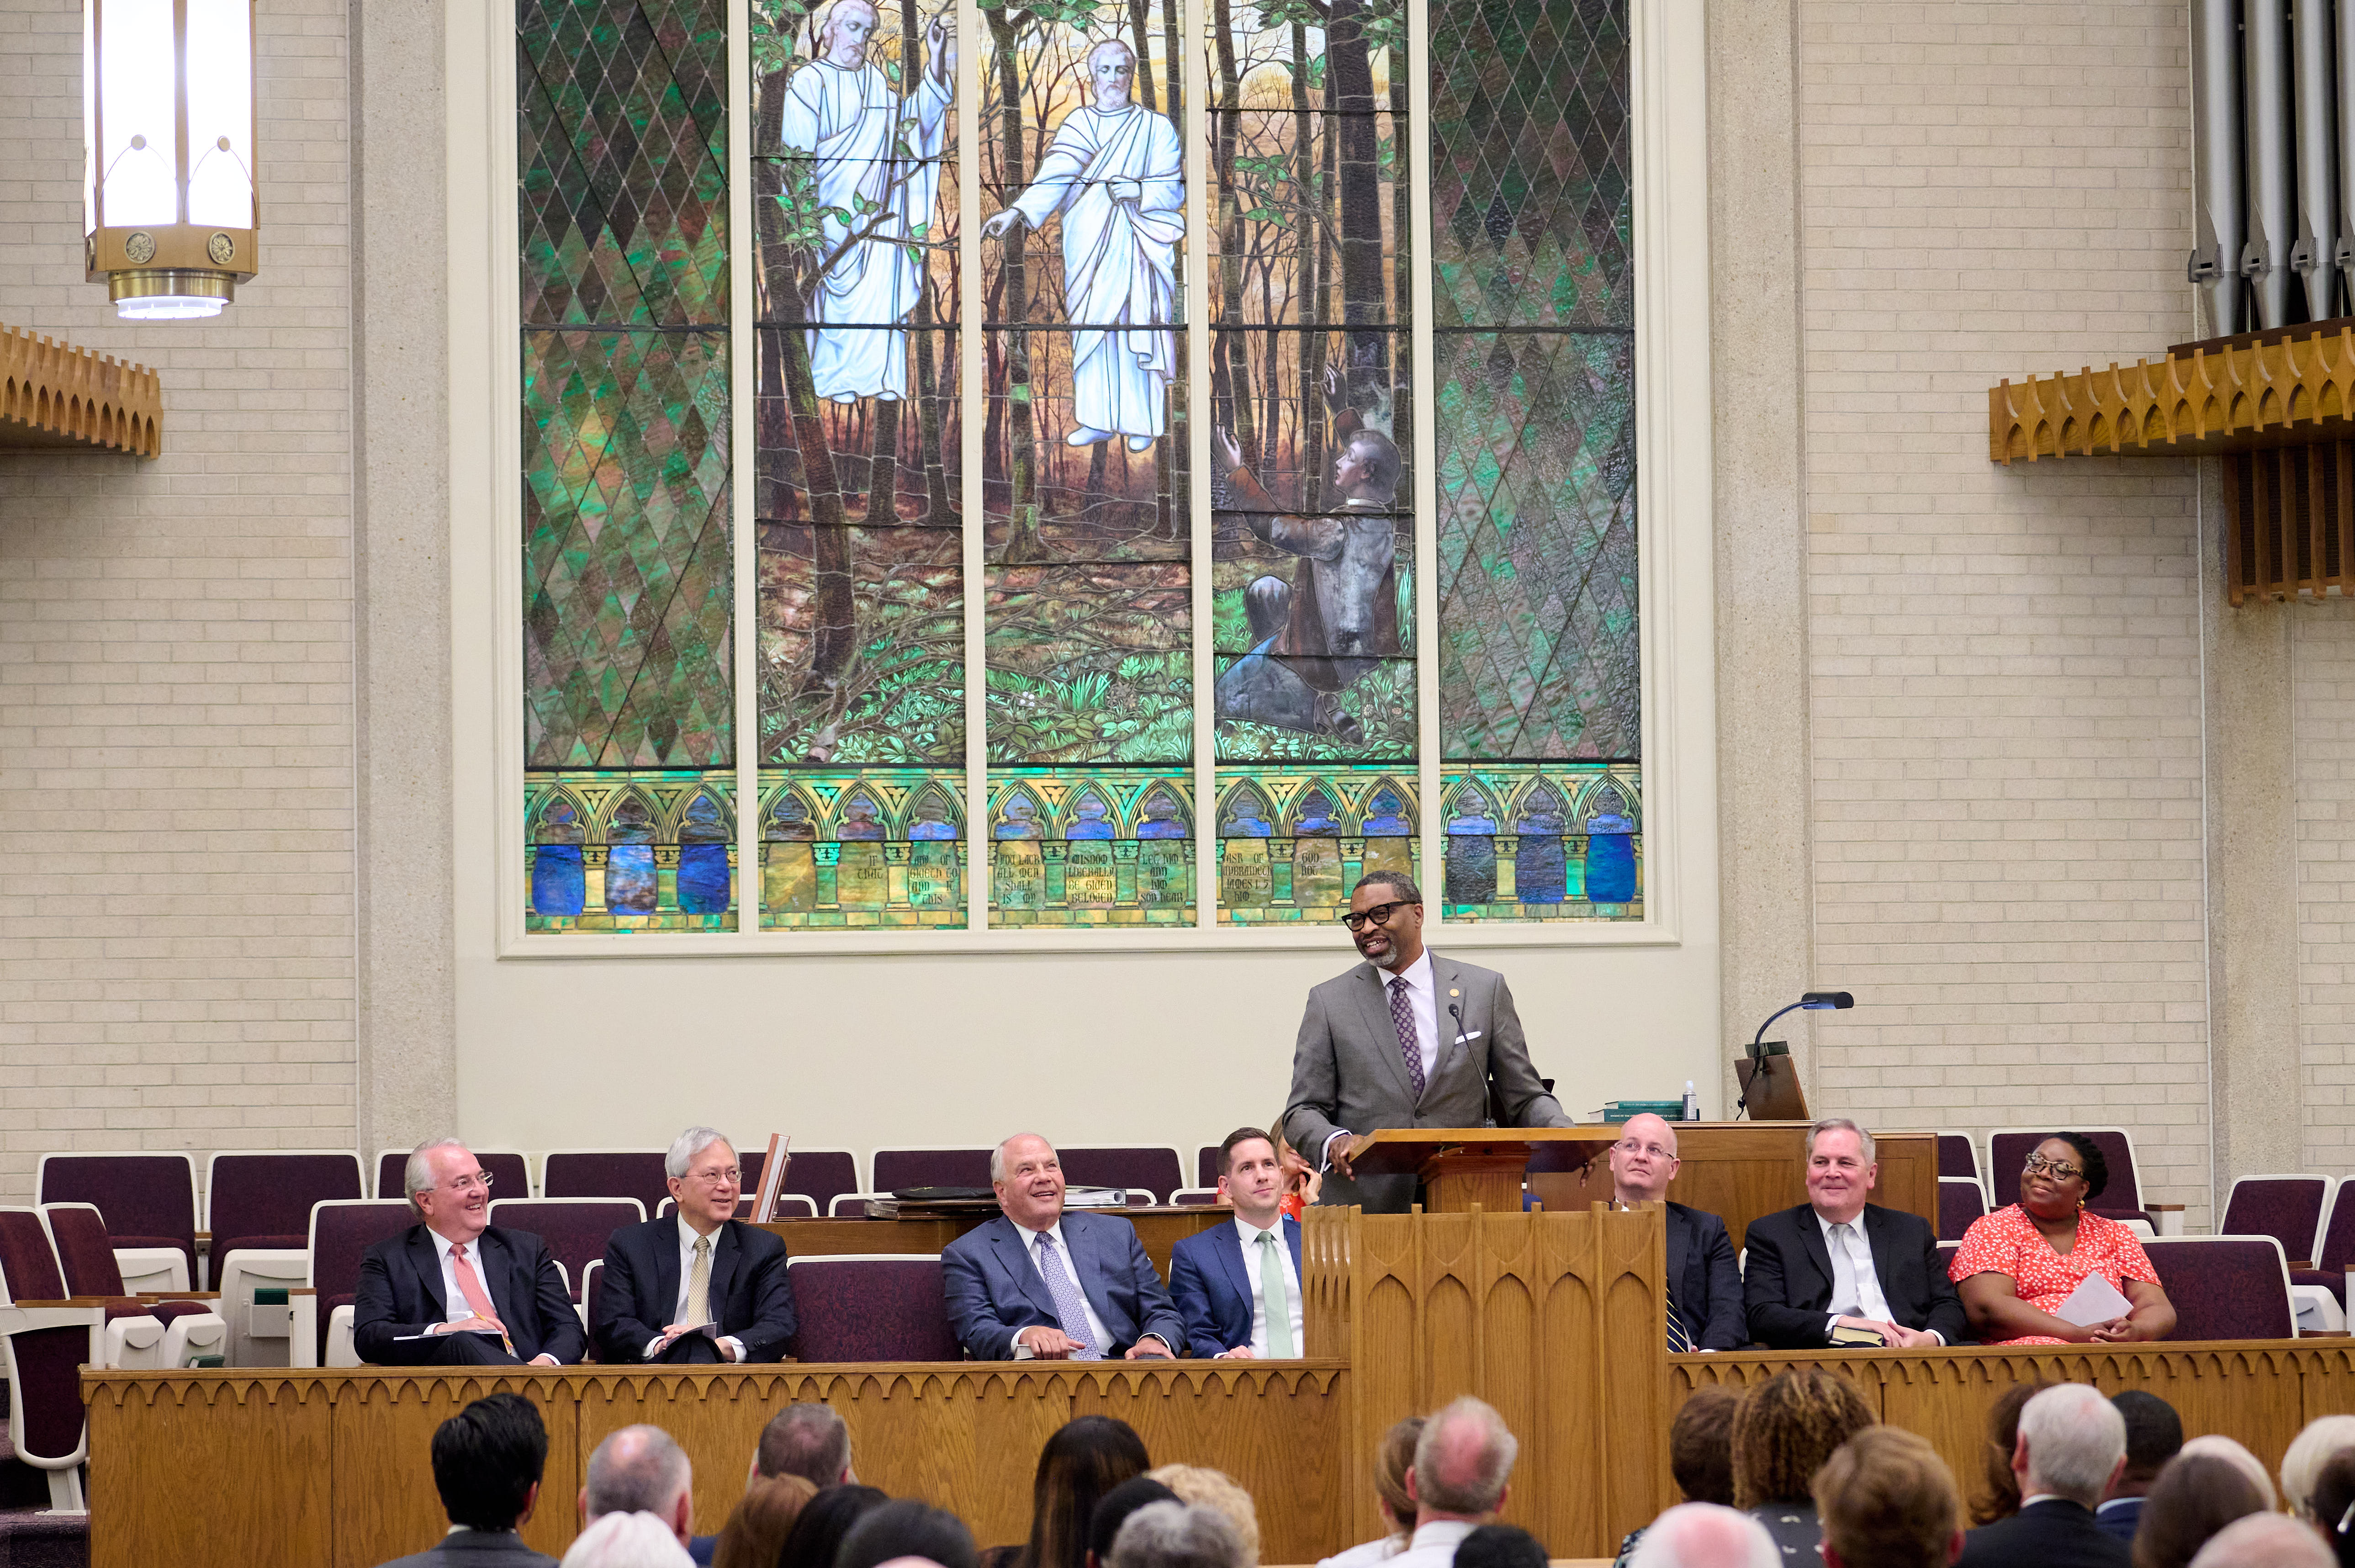 Tracy Browning, far right, listens as NAACP President Derrick Johnson speaks at a Latter-day Saint sacrament meeting.